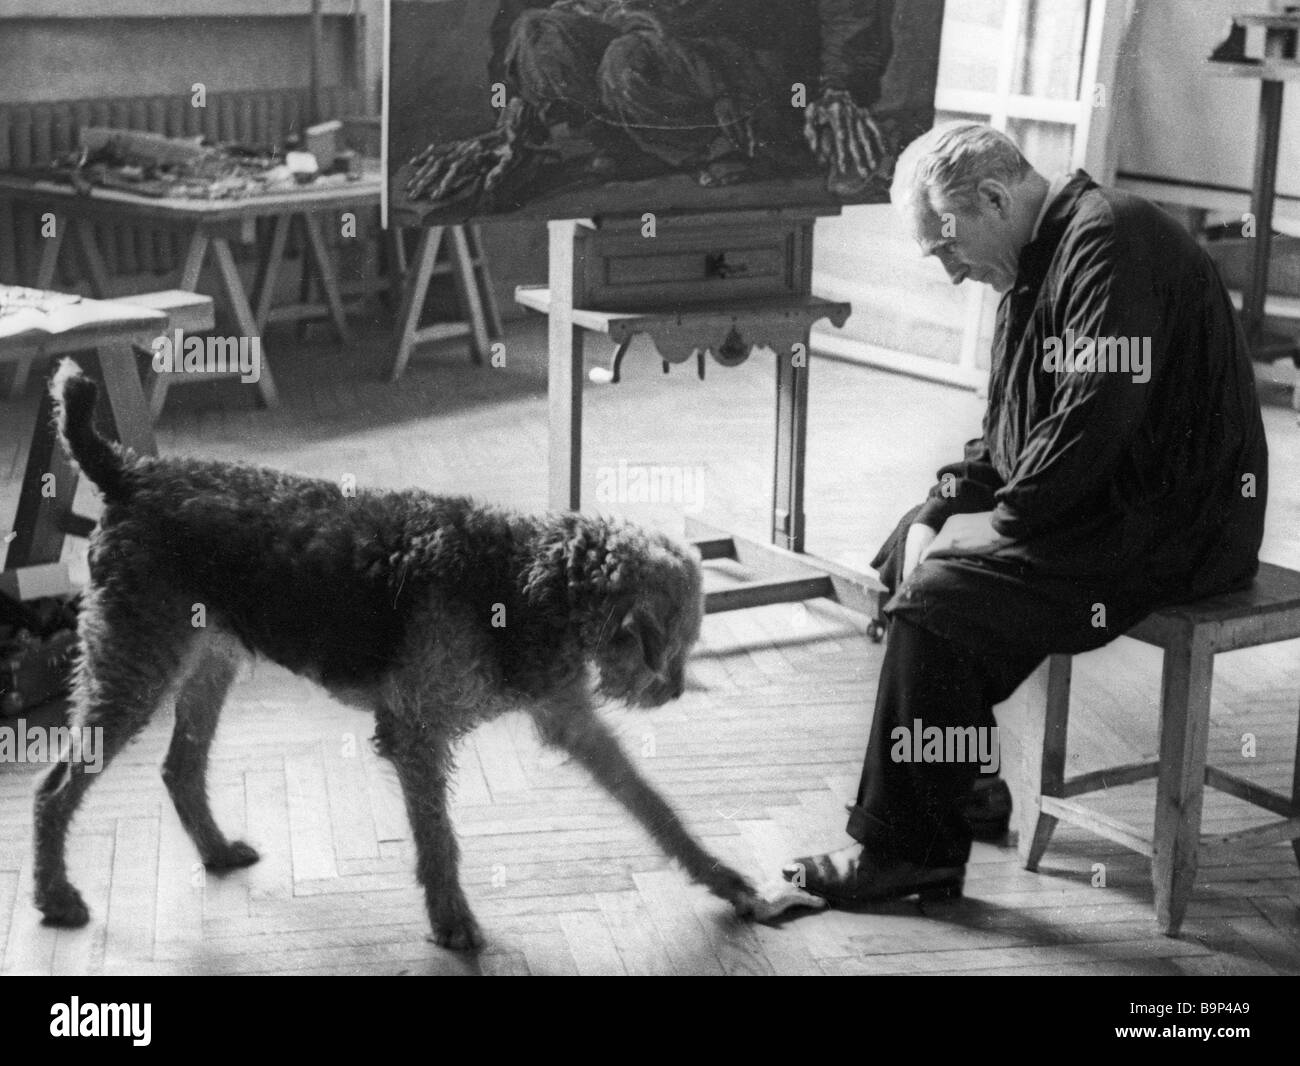 Soviet artist Pavel Korin playing with a dog In his studio - Stock Image